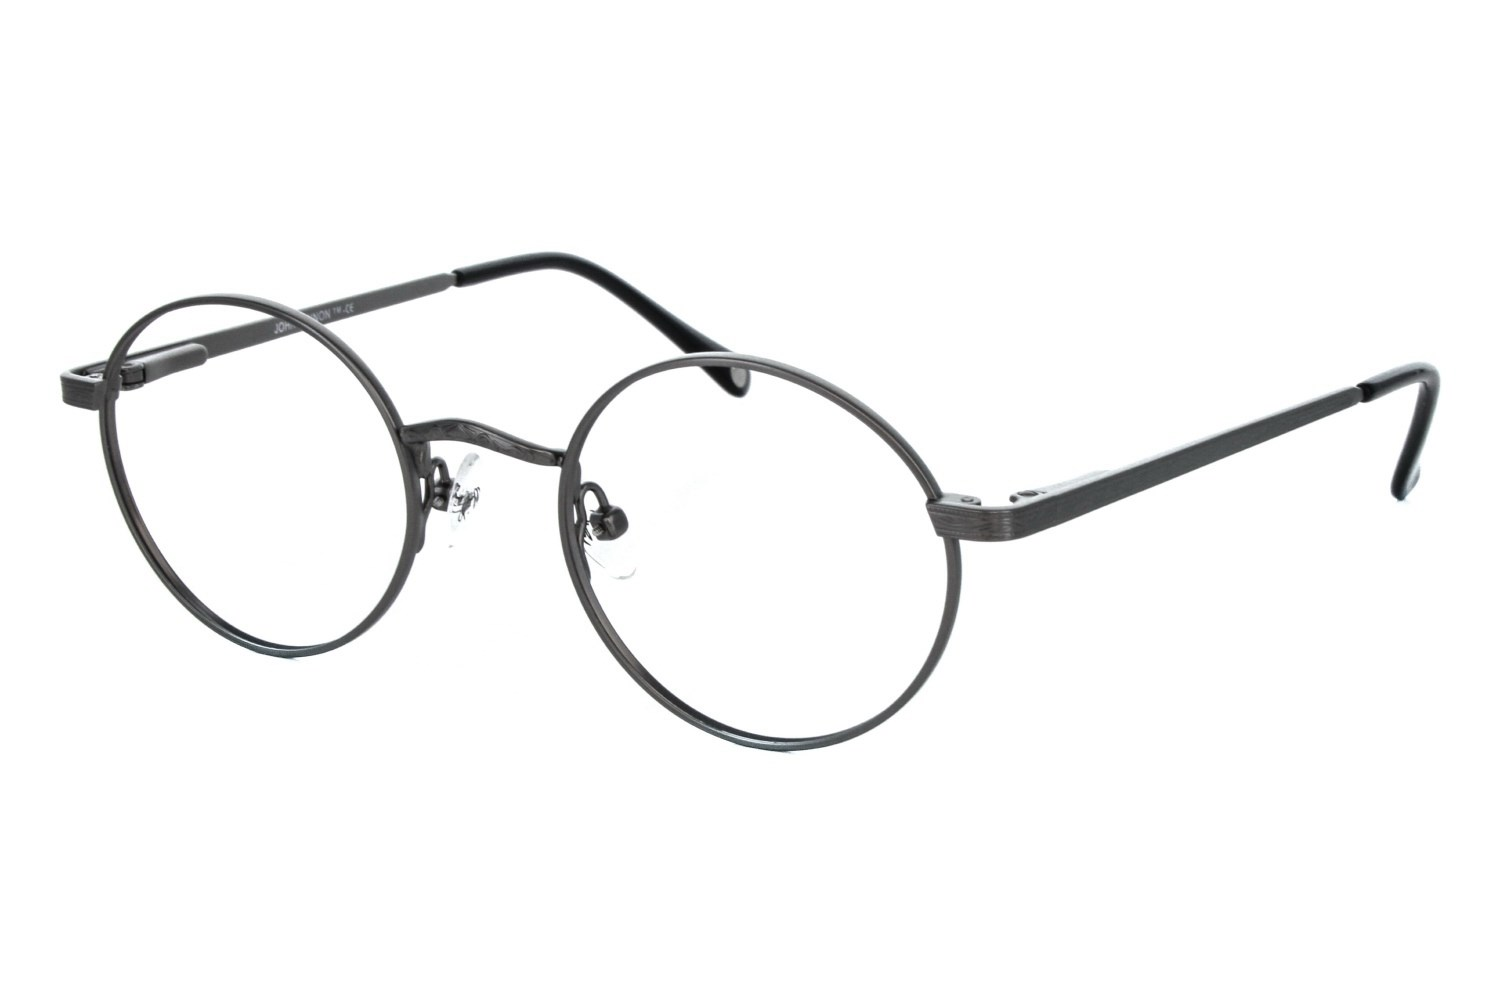 a832445e81 John Lennon JL 310 Prescription Eyeglasses - TechnoReadingGlasses